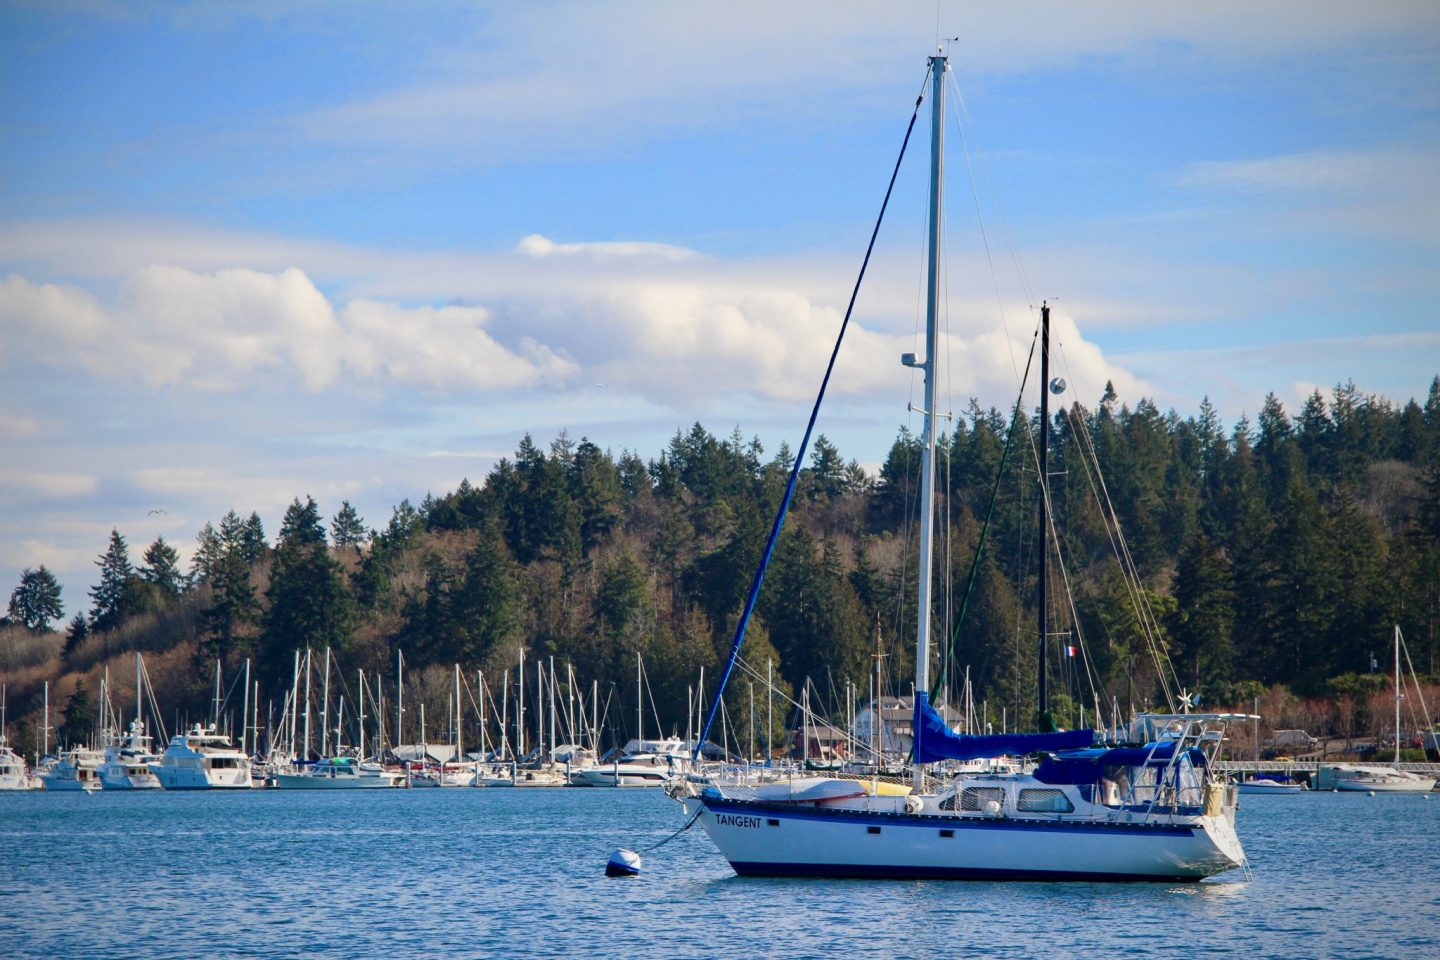 Bainbridge Island sailboat, Washington - The Spectacular Adventurer